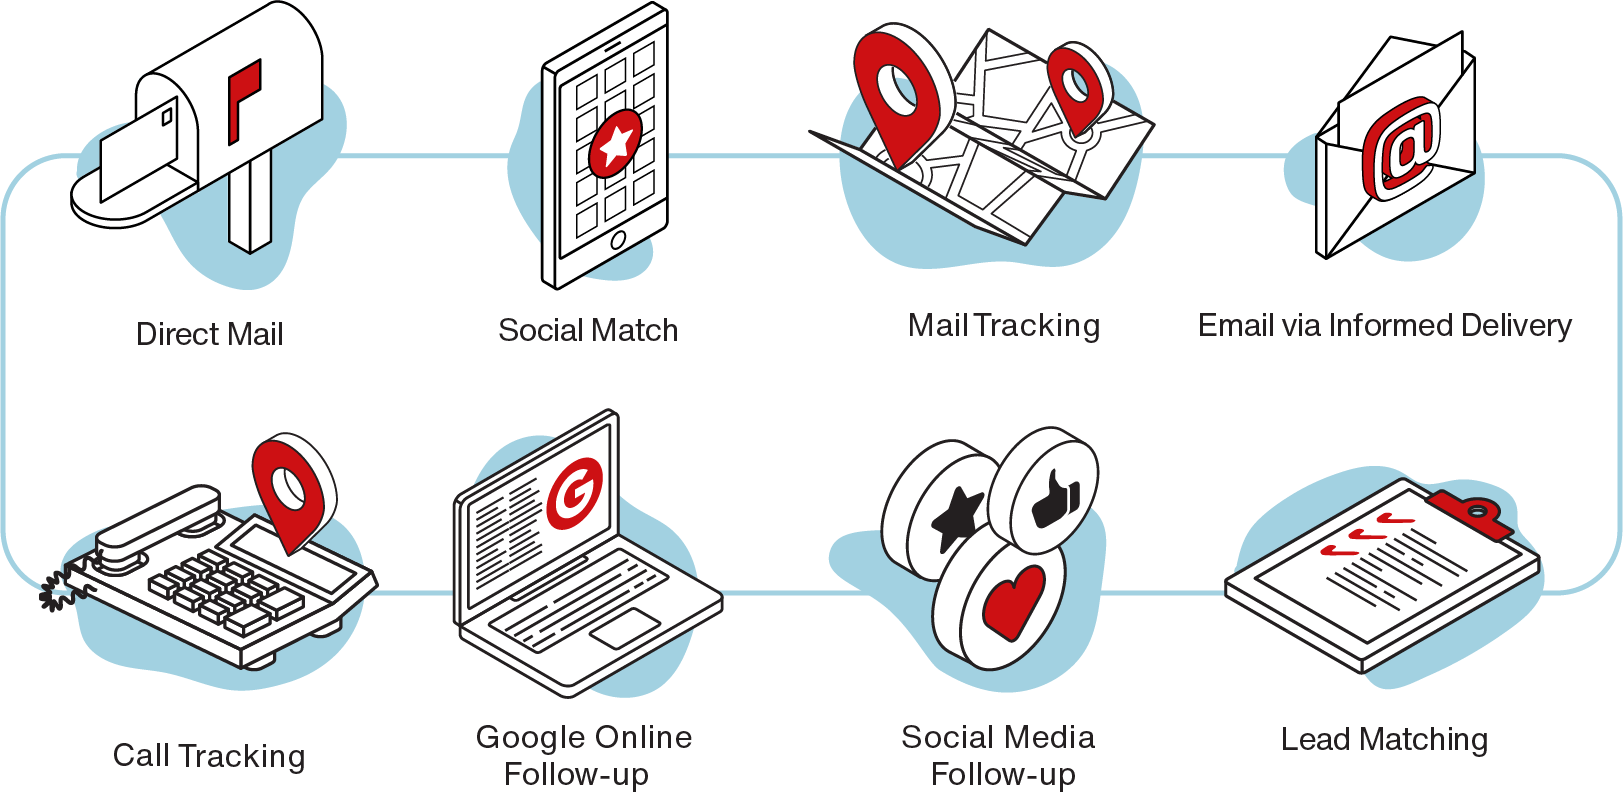 Integrated Online and Offline Marketing